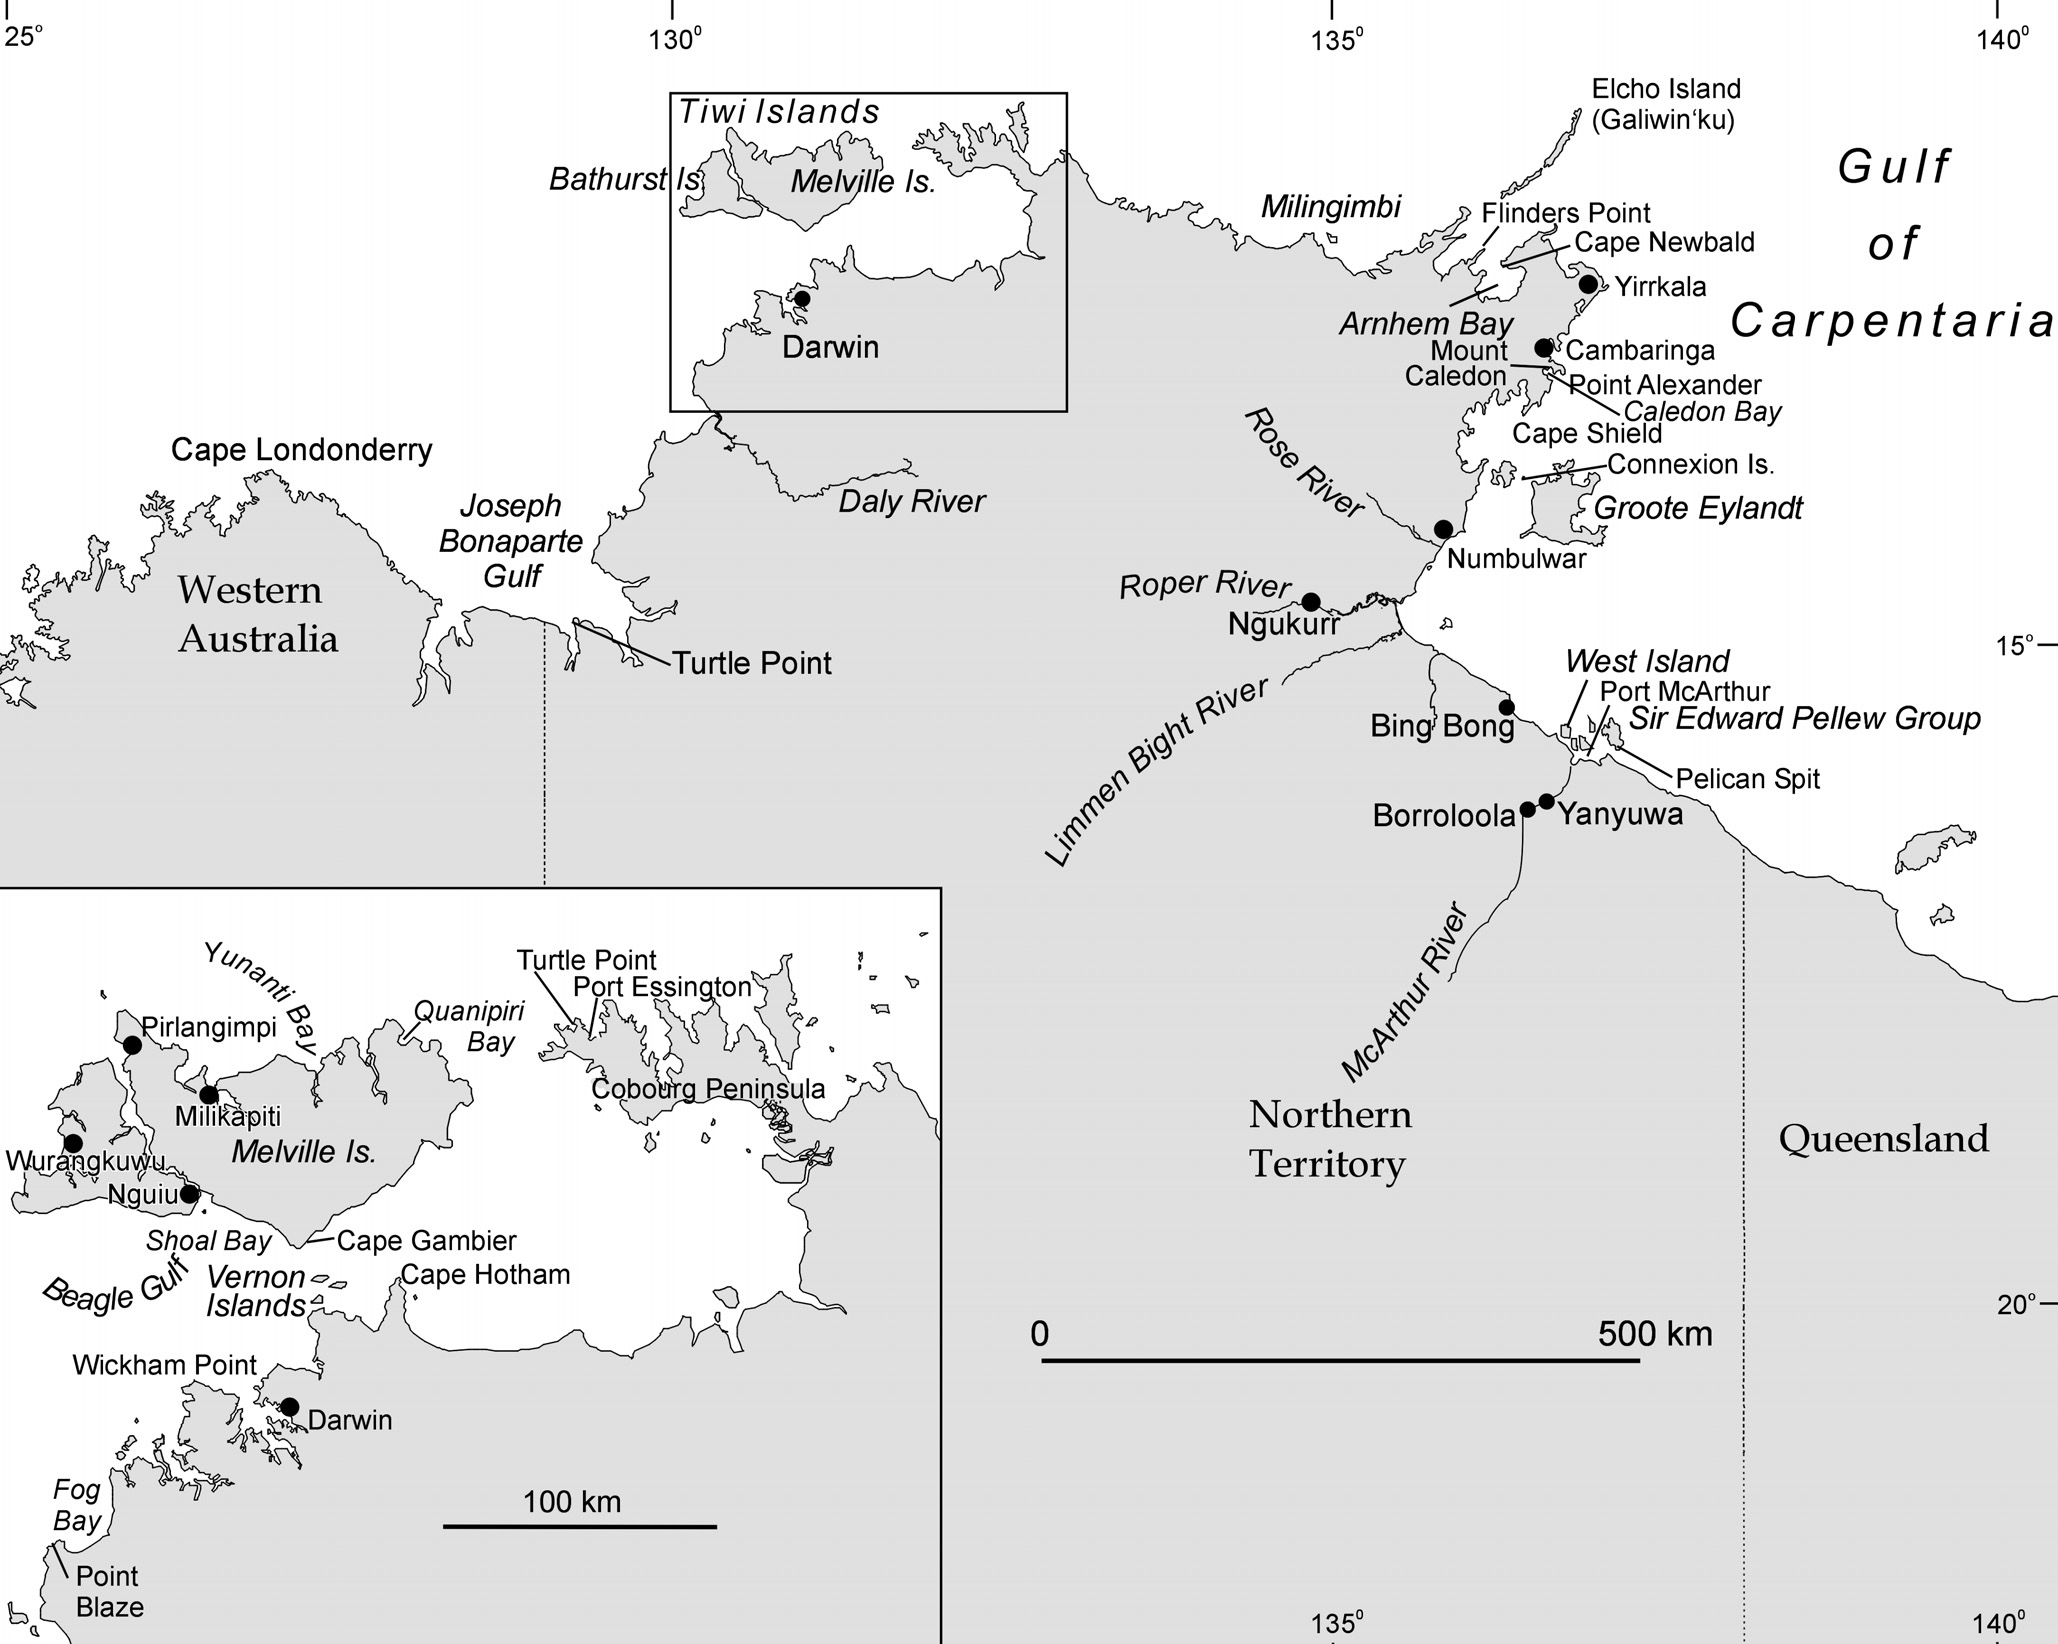 Figure 6.2 The Northern Territory Coast of the Gulf of Carpentaria showing place names mentioned in the text.